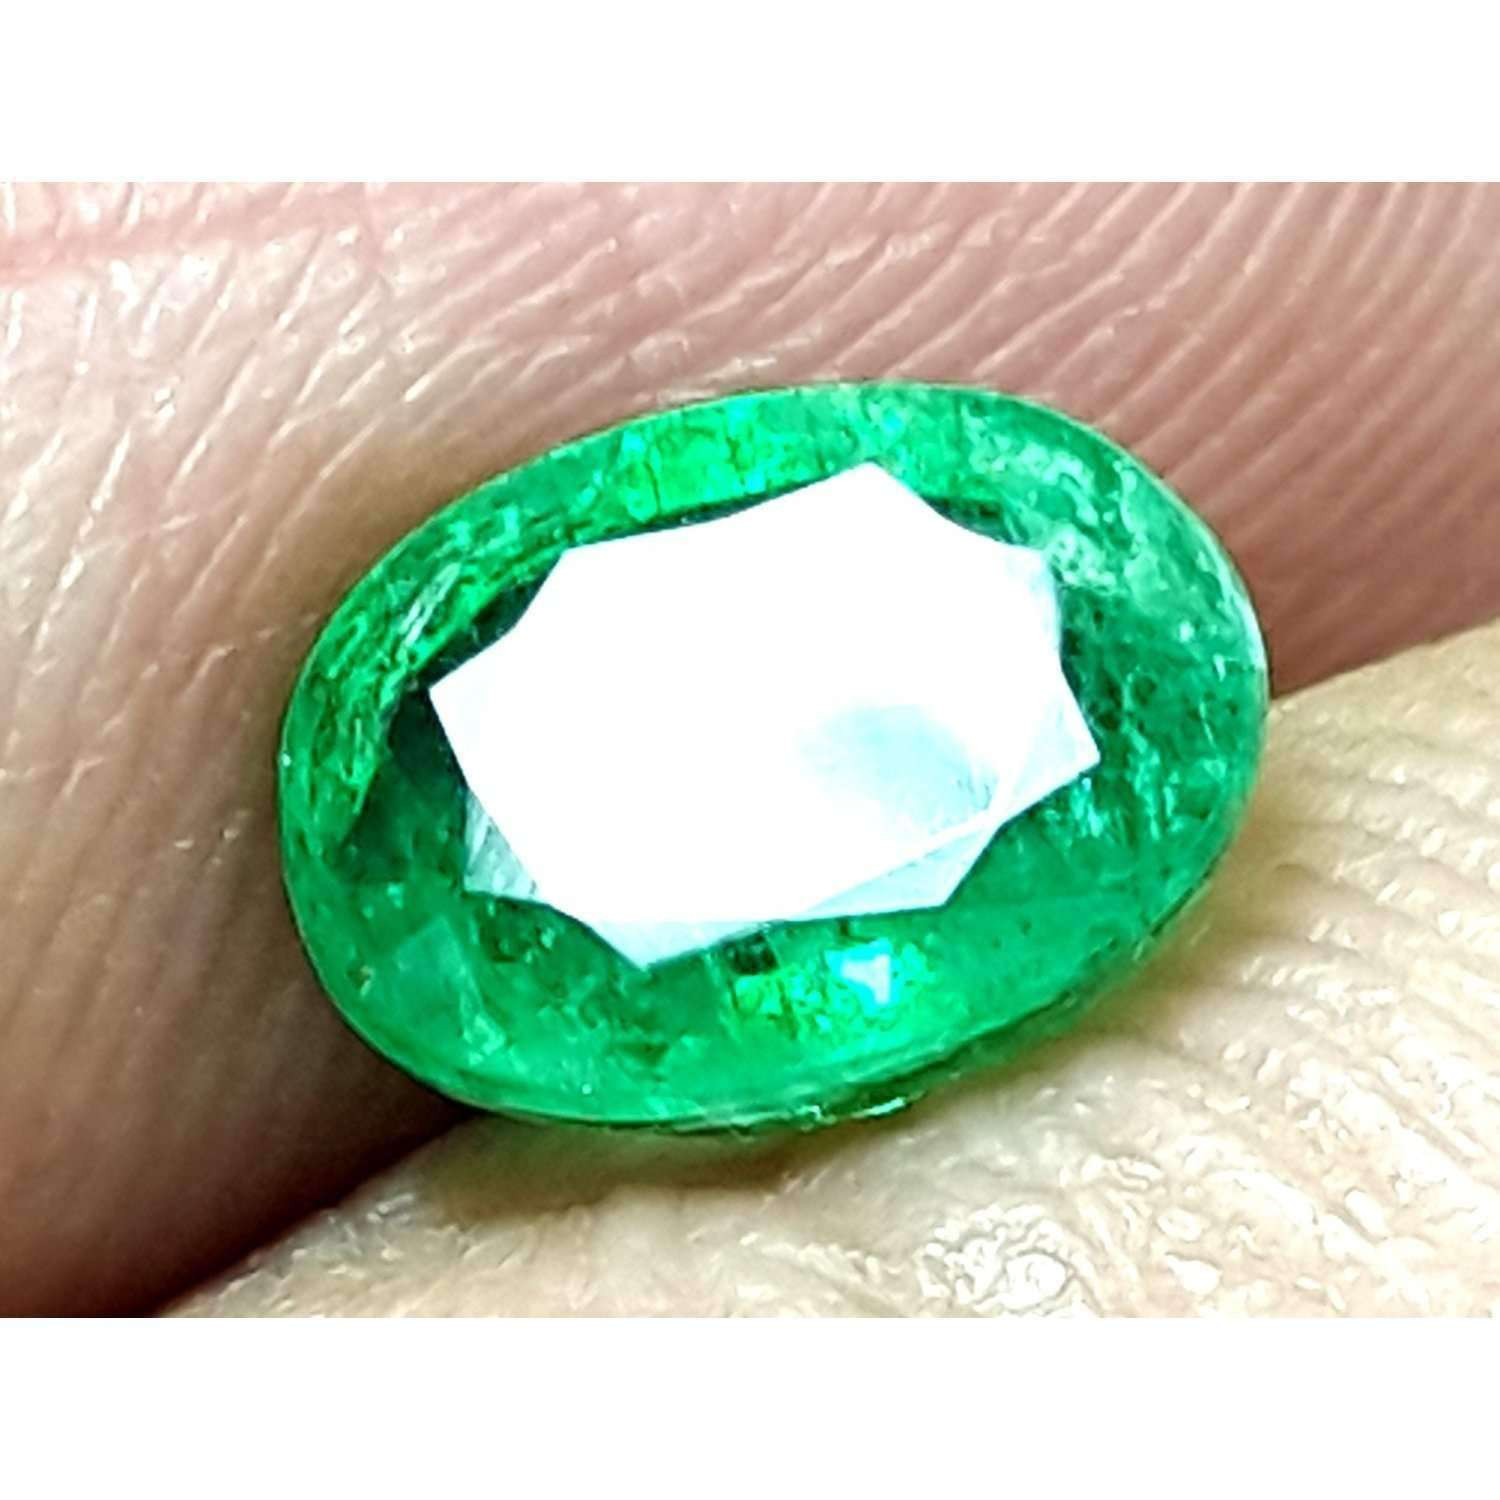 0.95 CT Natural High Luster Zambian Emerald 7 X 5 X 3.4 MM For Ring & Pendant